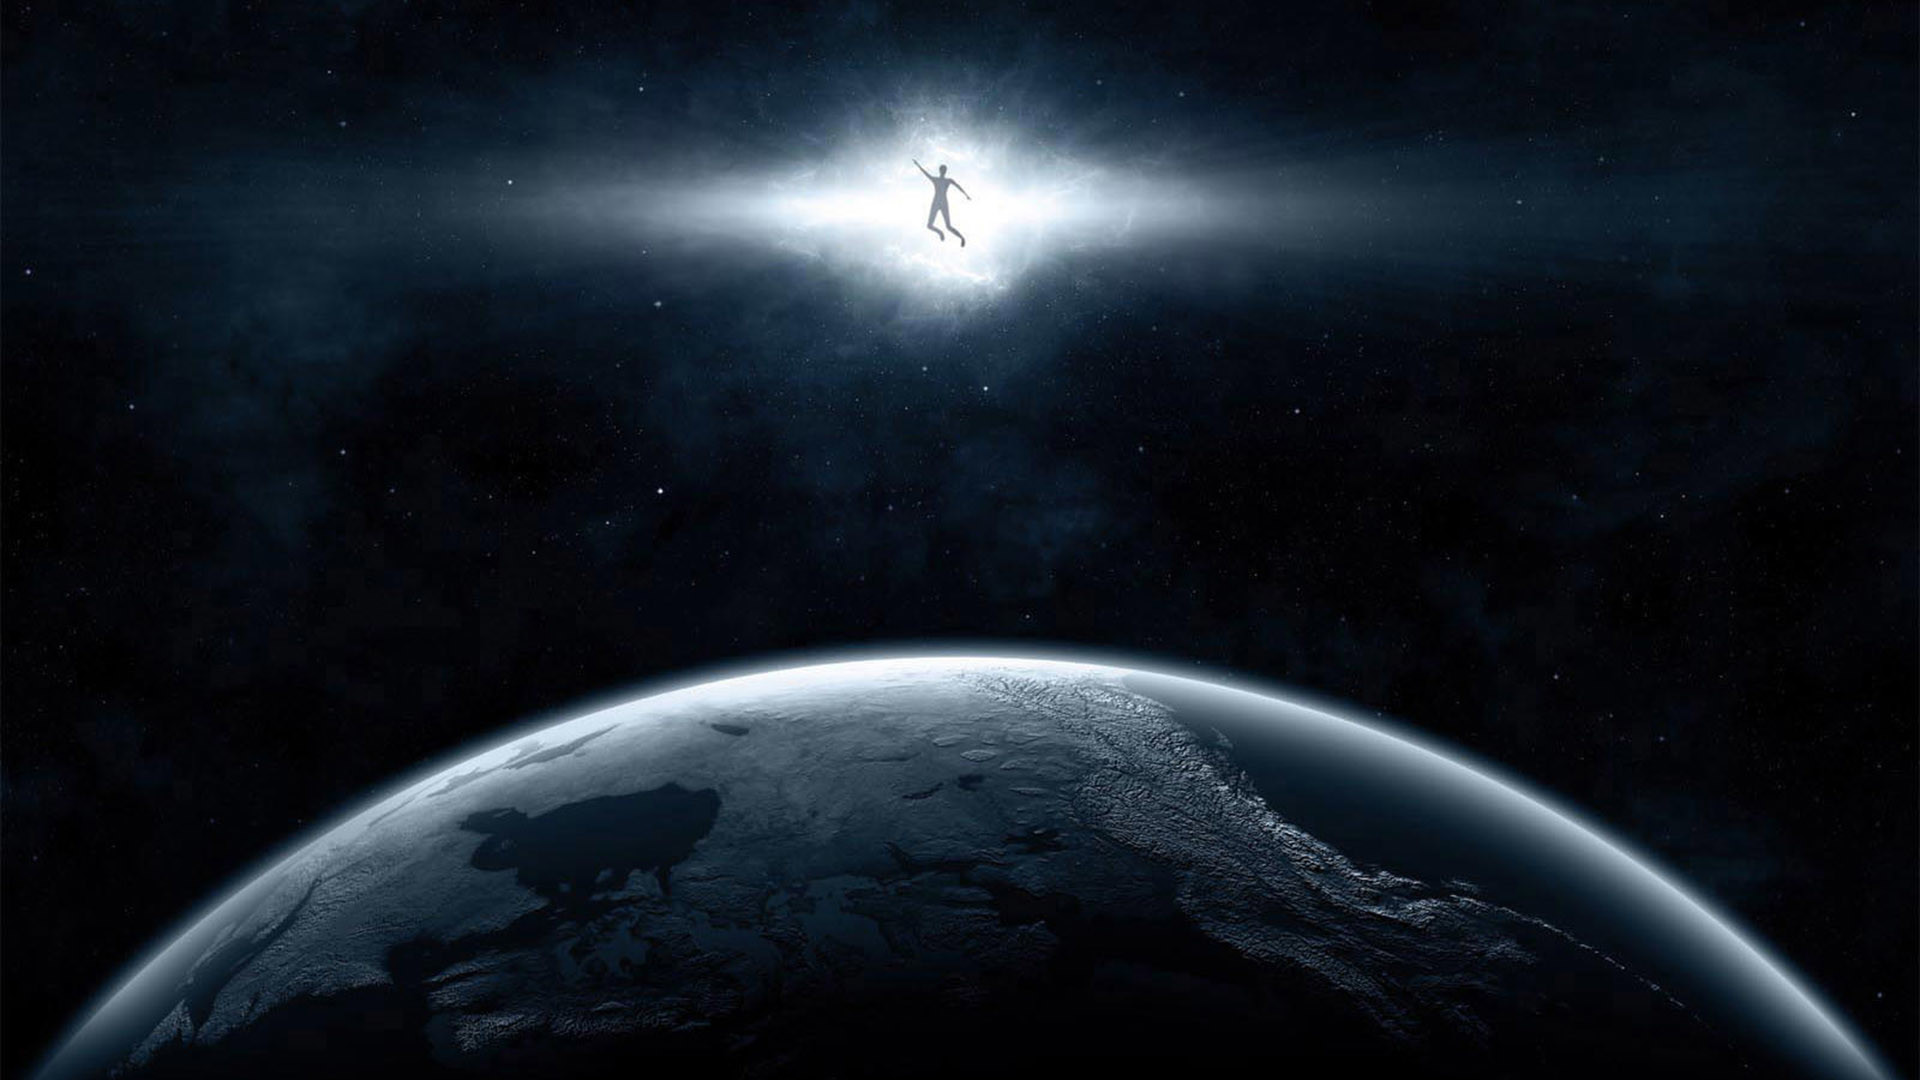 Hd space wallpapers 1080p 70 images - Wallpapers space hd ...